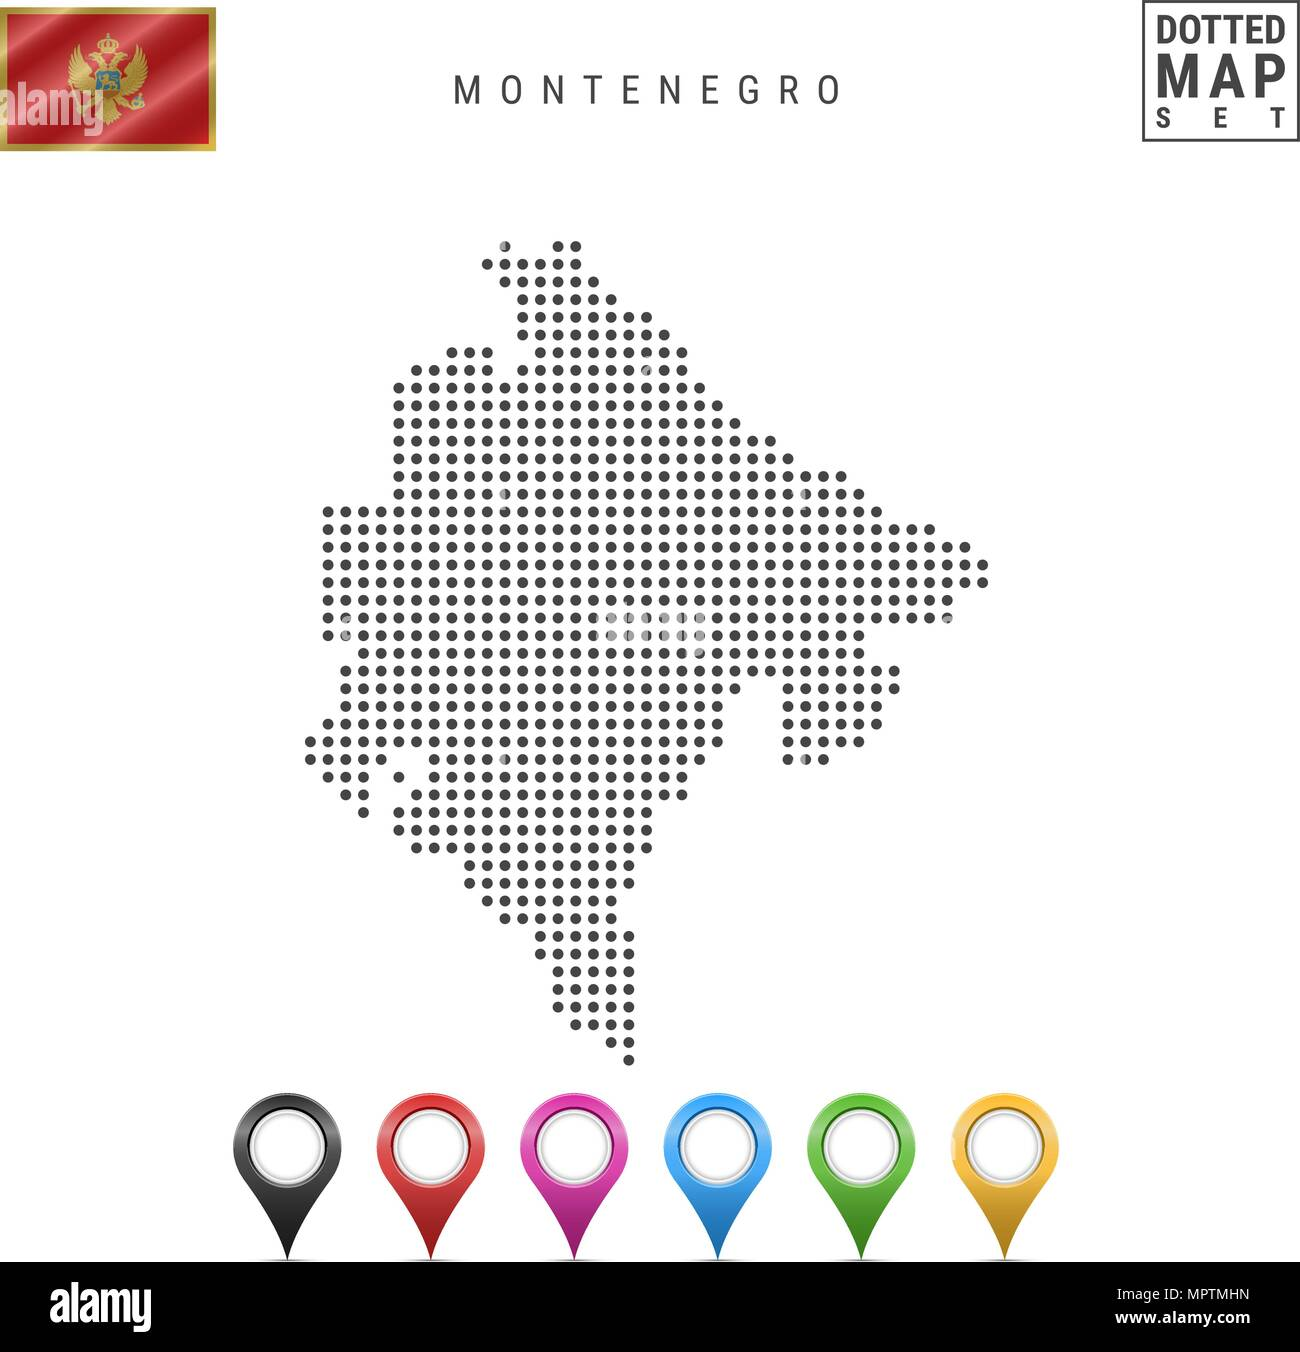 Vector Dotted Map of Montenegro. Simple Silhouette of Montenegro. Flag of Montenegro. Set of Multicolored Map Markers - Stock Image